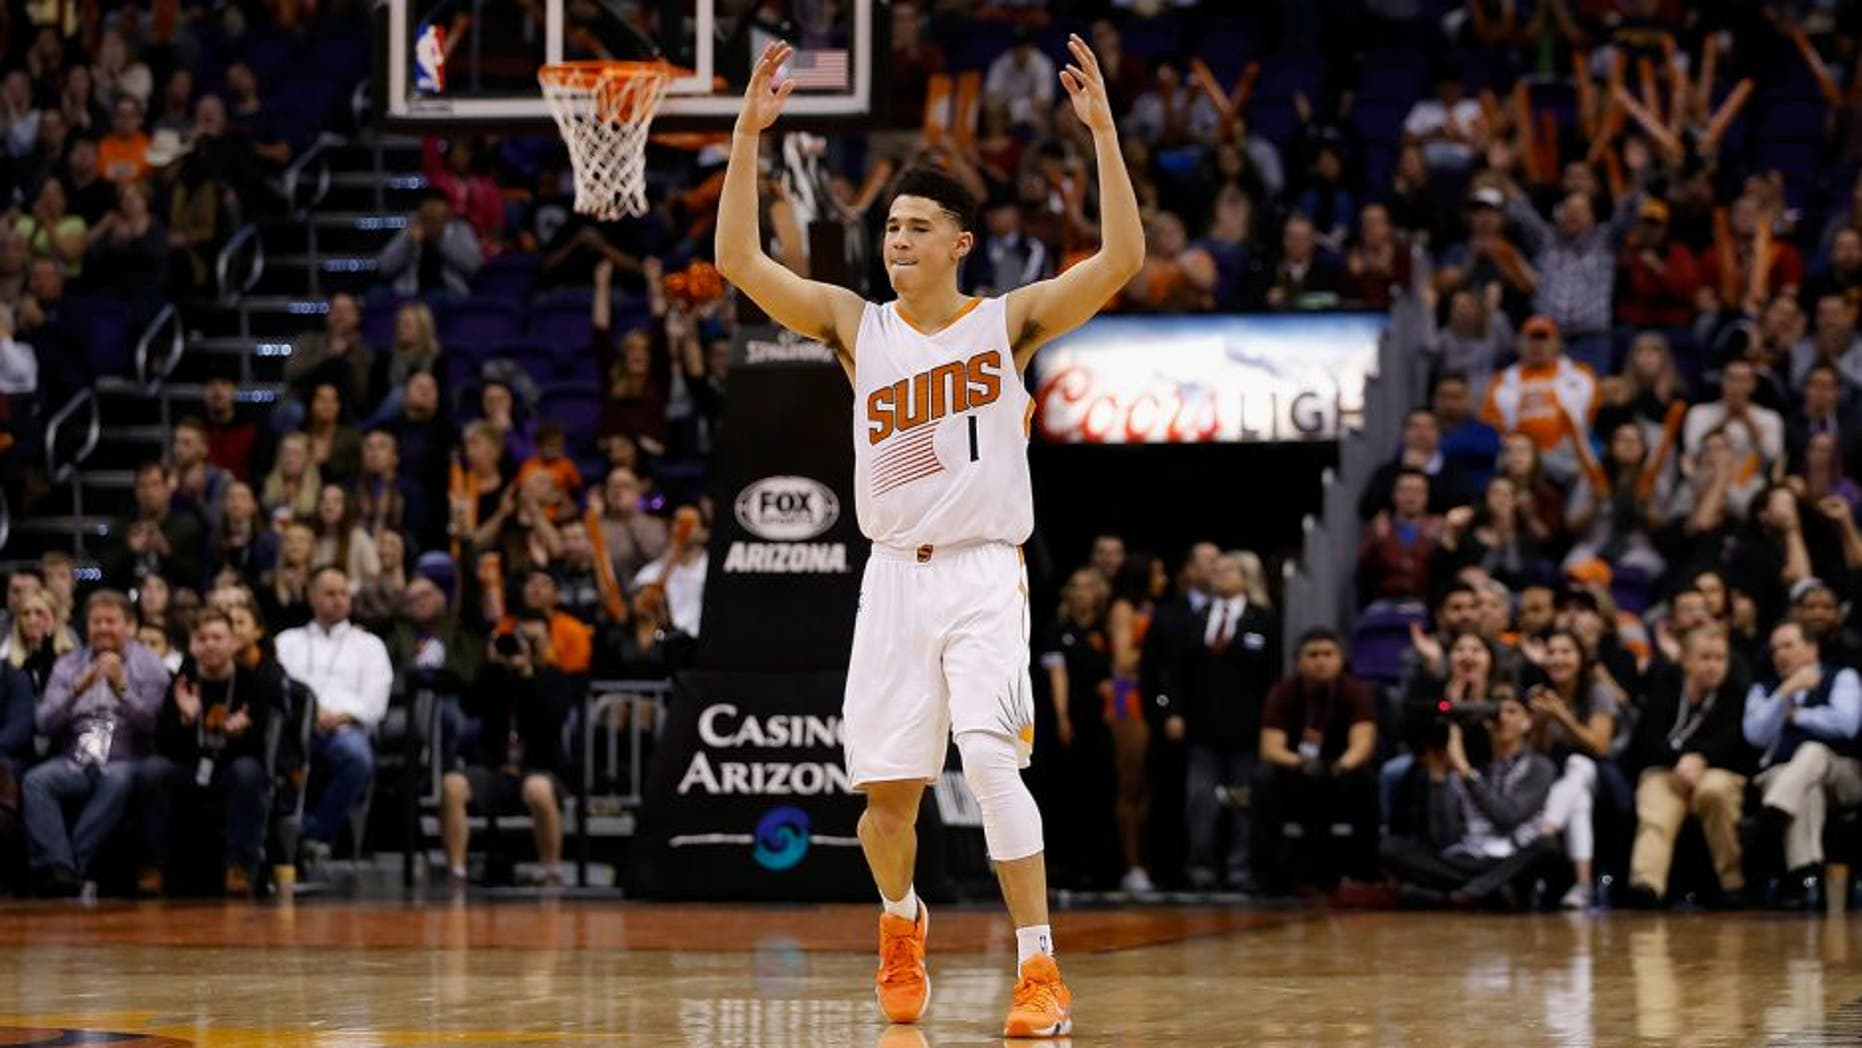 PHOENIX, AZ - JANUARY 06: Devin Booker #1 of the Phoenix Suns reacts after the Suns scored against the Charlotte Hornets during the second half of the NBA game at Talking Stick Resort Arena on January 6, 2016 in Phoenix, Arizona. The Suns defeated the Hornets 111-102. NOTE TO USER: User expressly acknowledges and agrees that, by downloading and or using this photograph, User is consenting to the terms and conditions of the Getty Images License Agreement. (Photo by Christian Petersen/Getty Images)